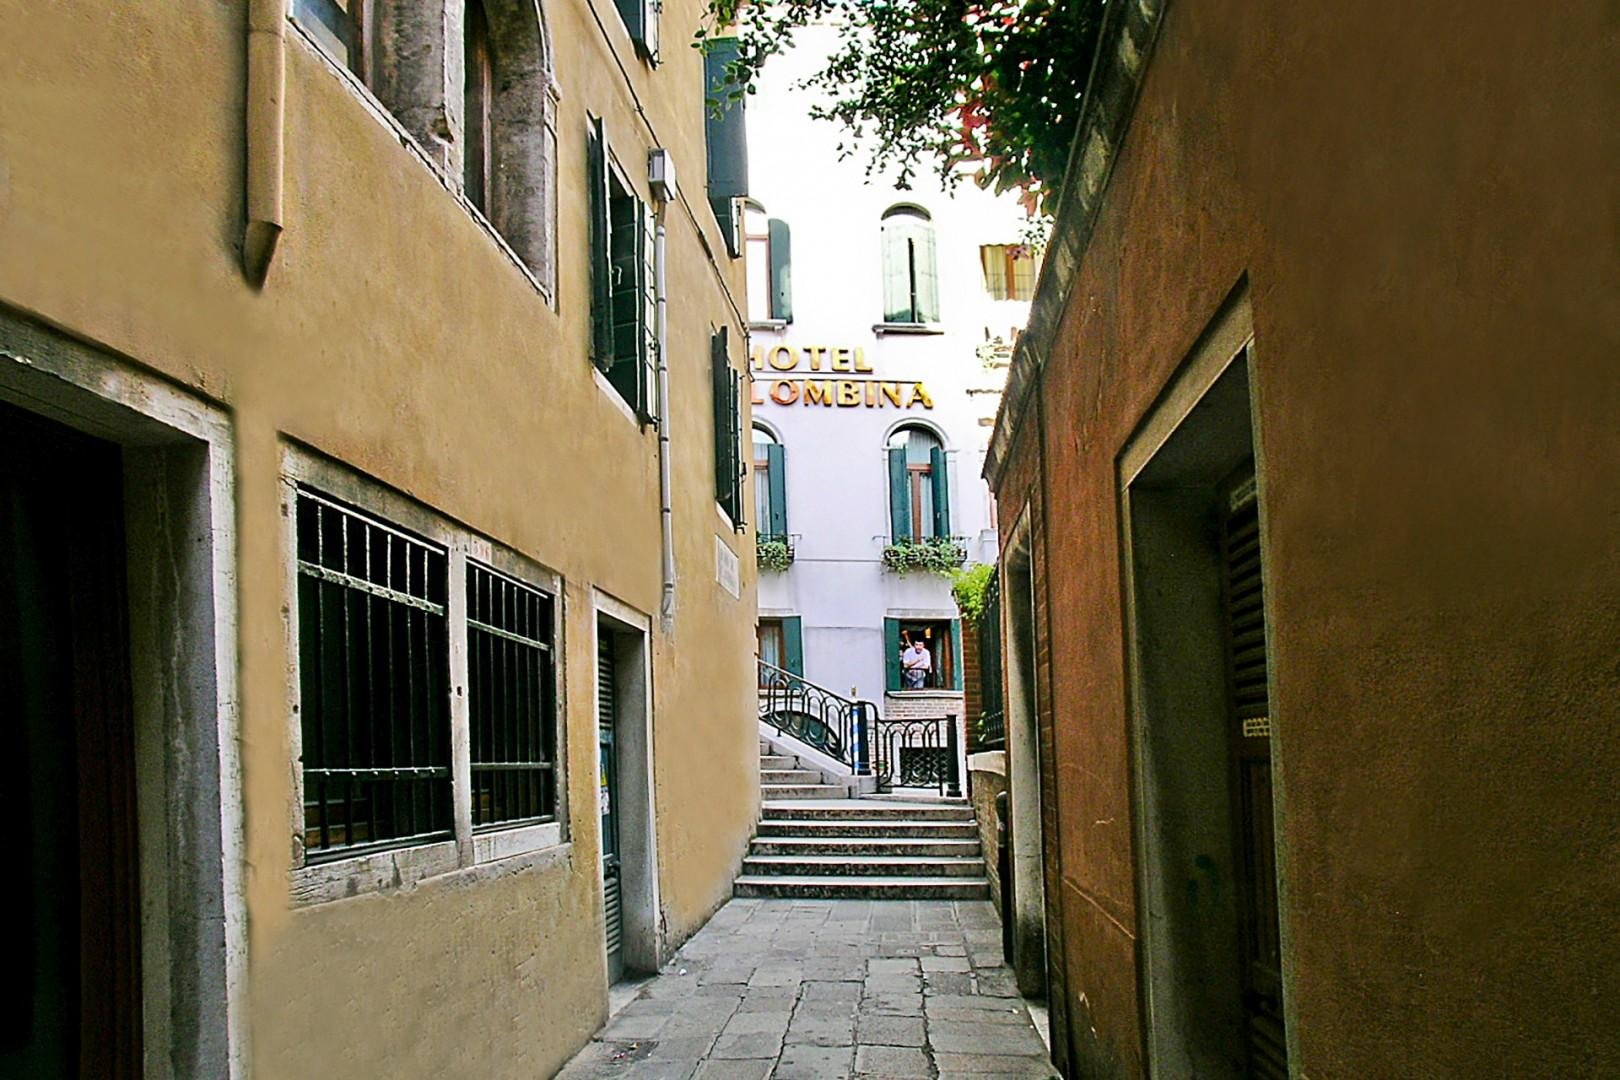 The neighborhood of Serenata is the prized, central St. Mark's district.